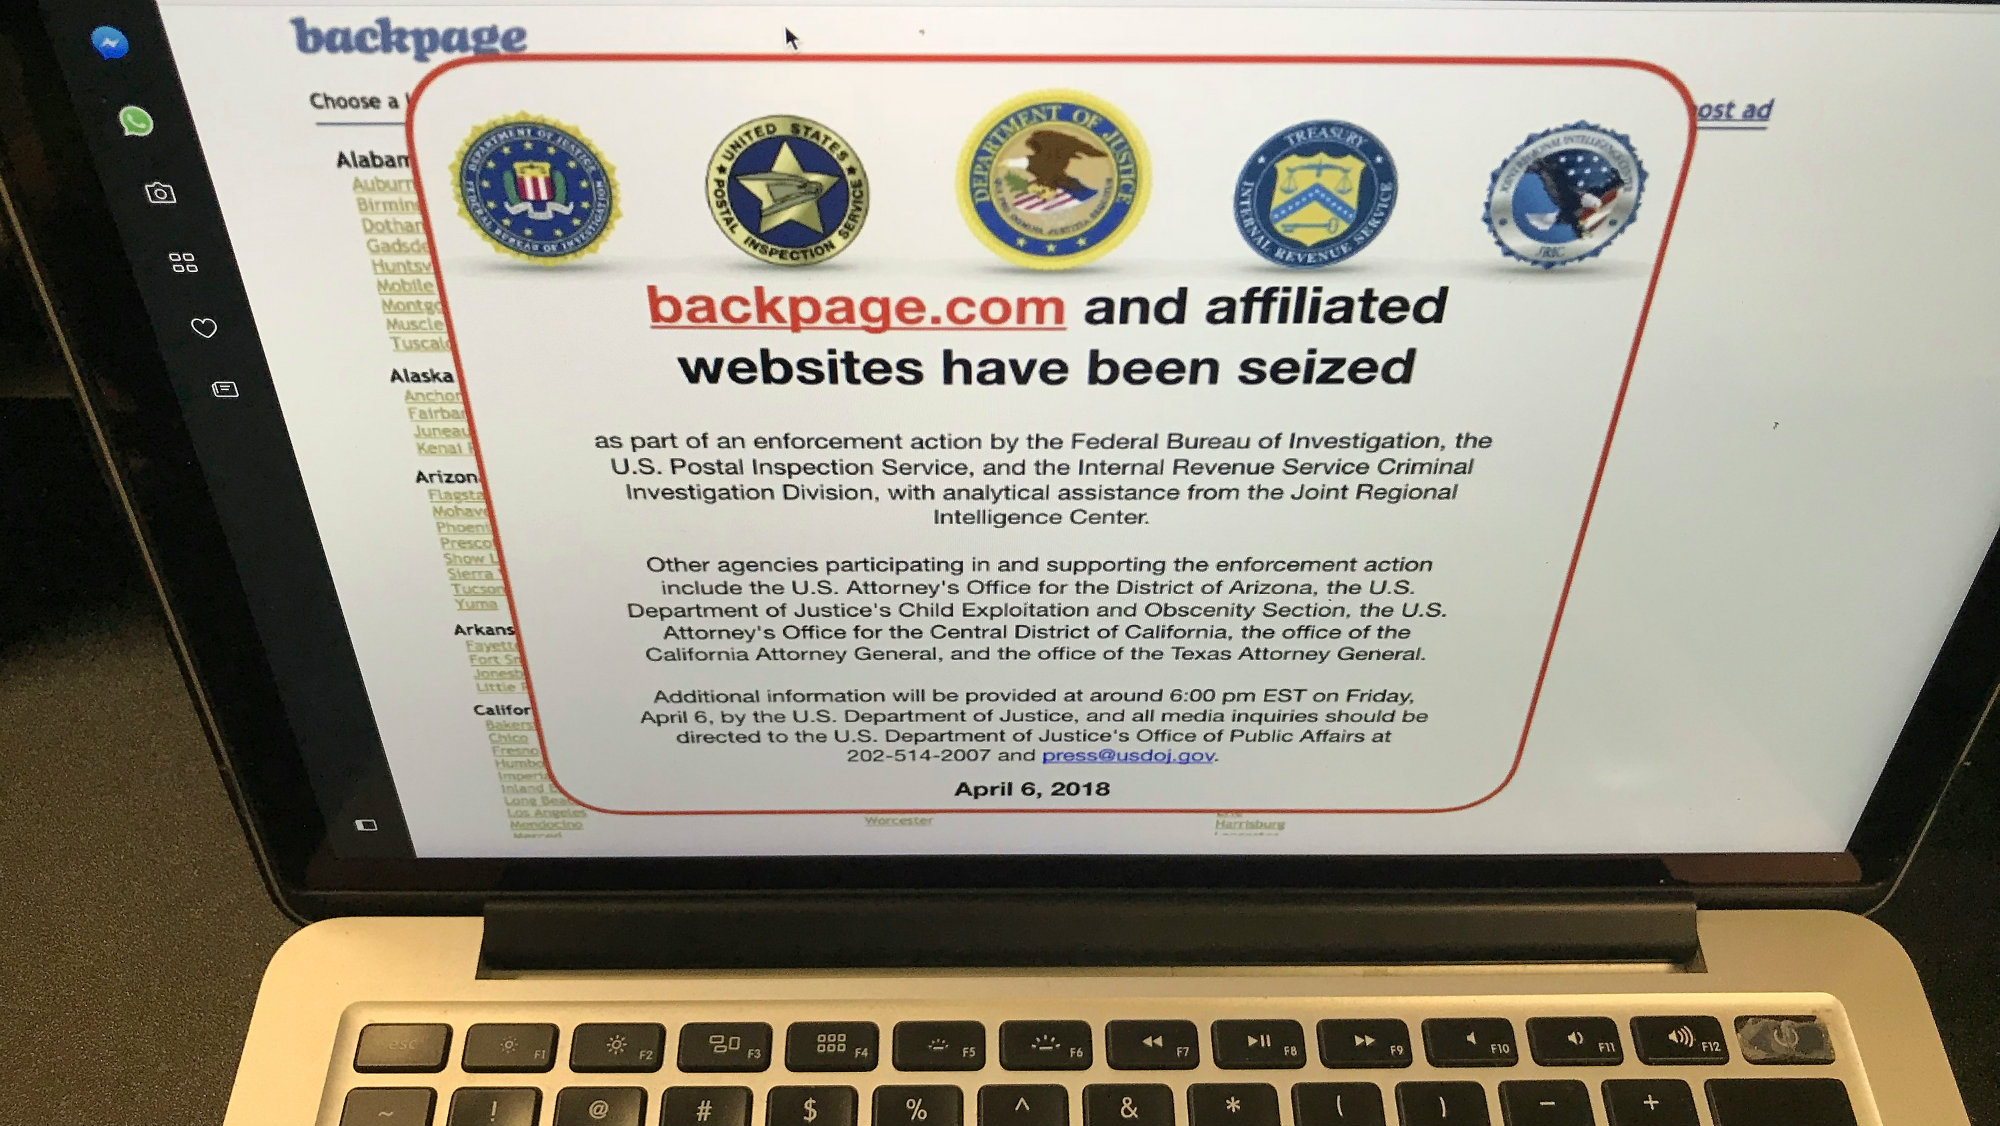 Homepage of Backpage.com after seizure by US authorities